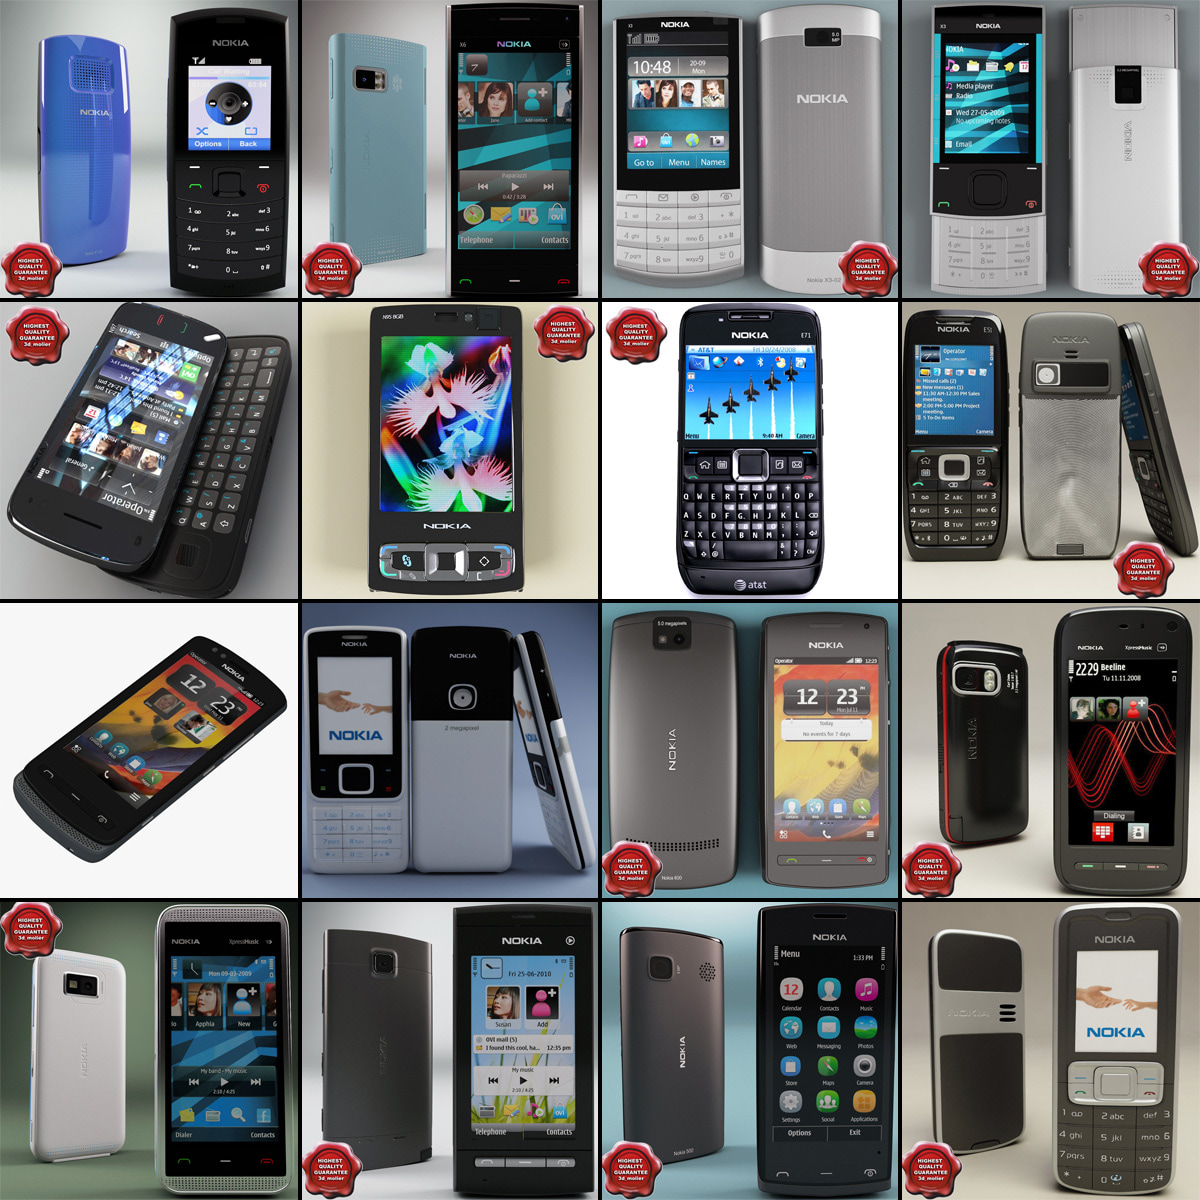 Nokia_Phones_Collection_V11_000.jpg